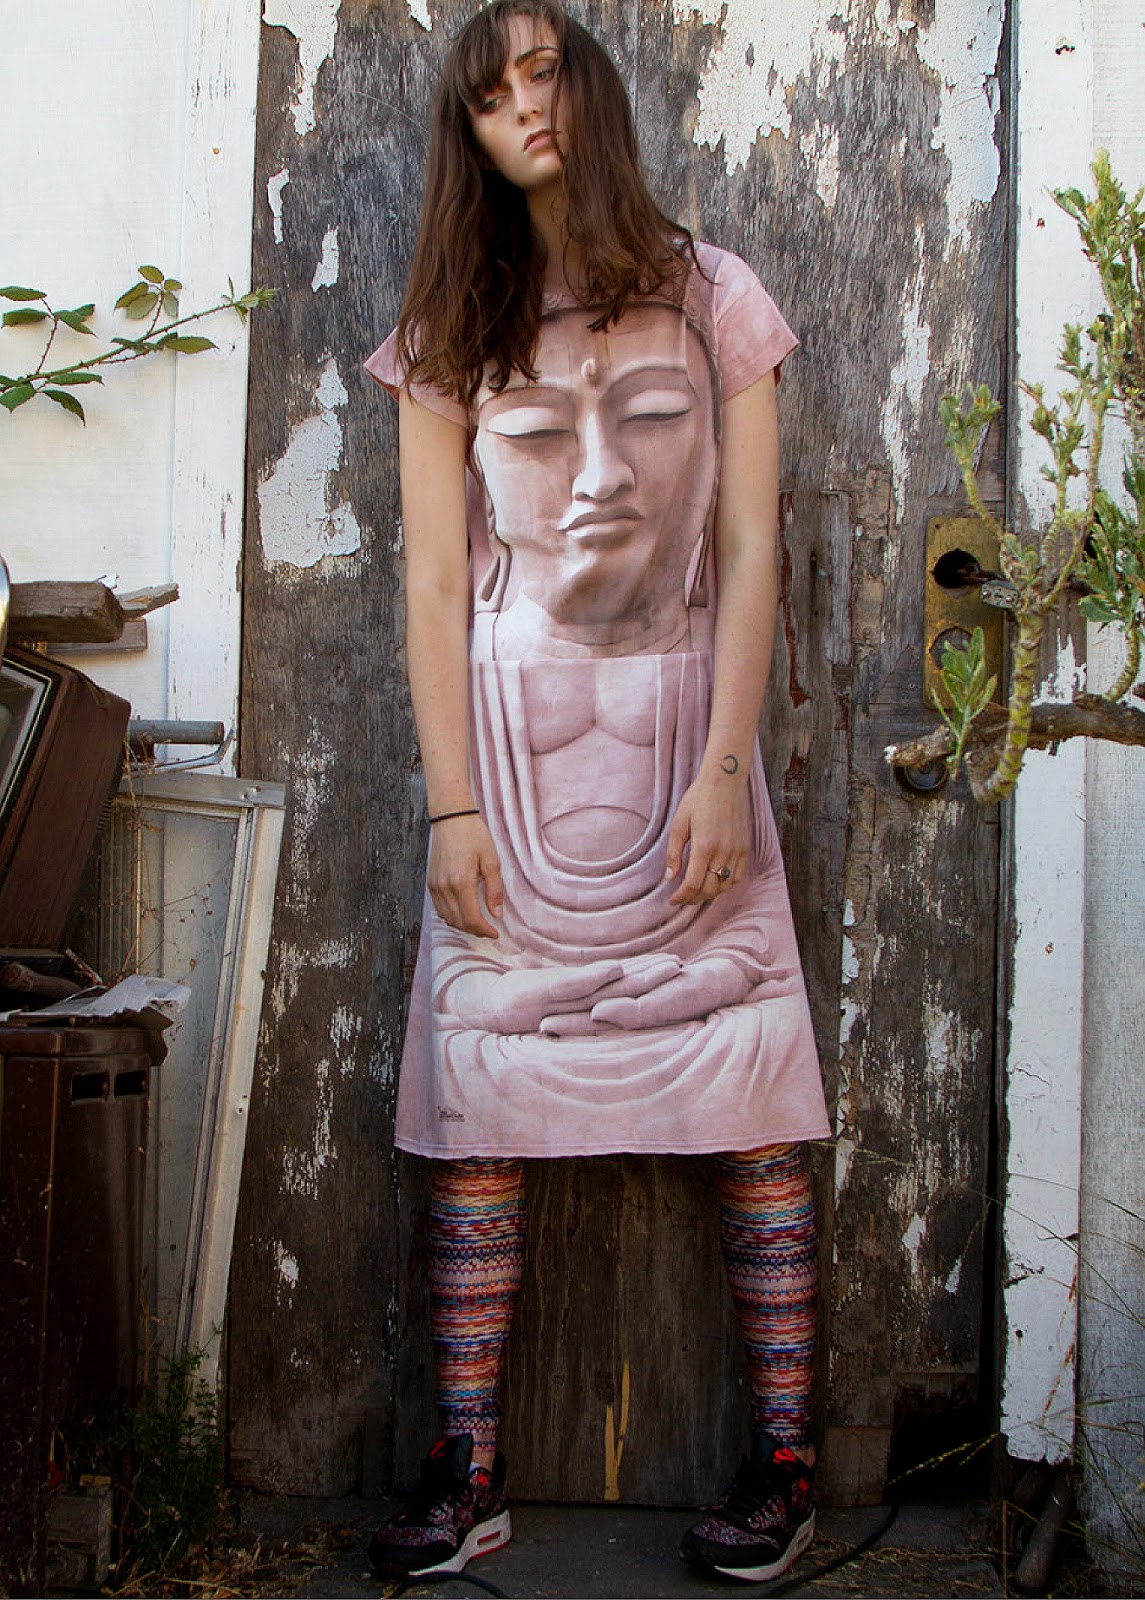 buddha face zen buddhism casual t-shirt dress hippie tie dye idilvice